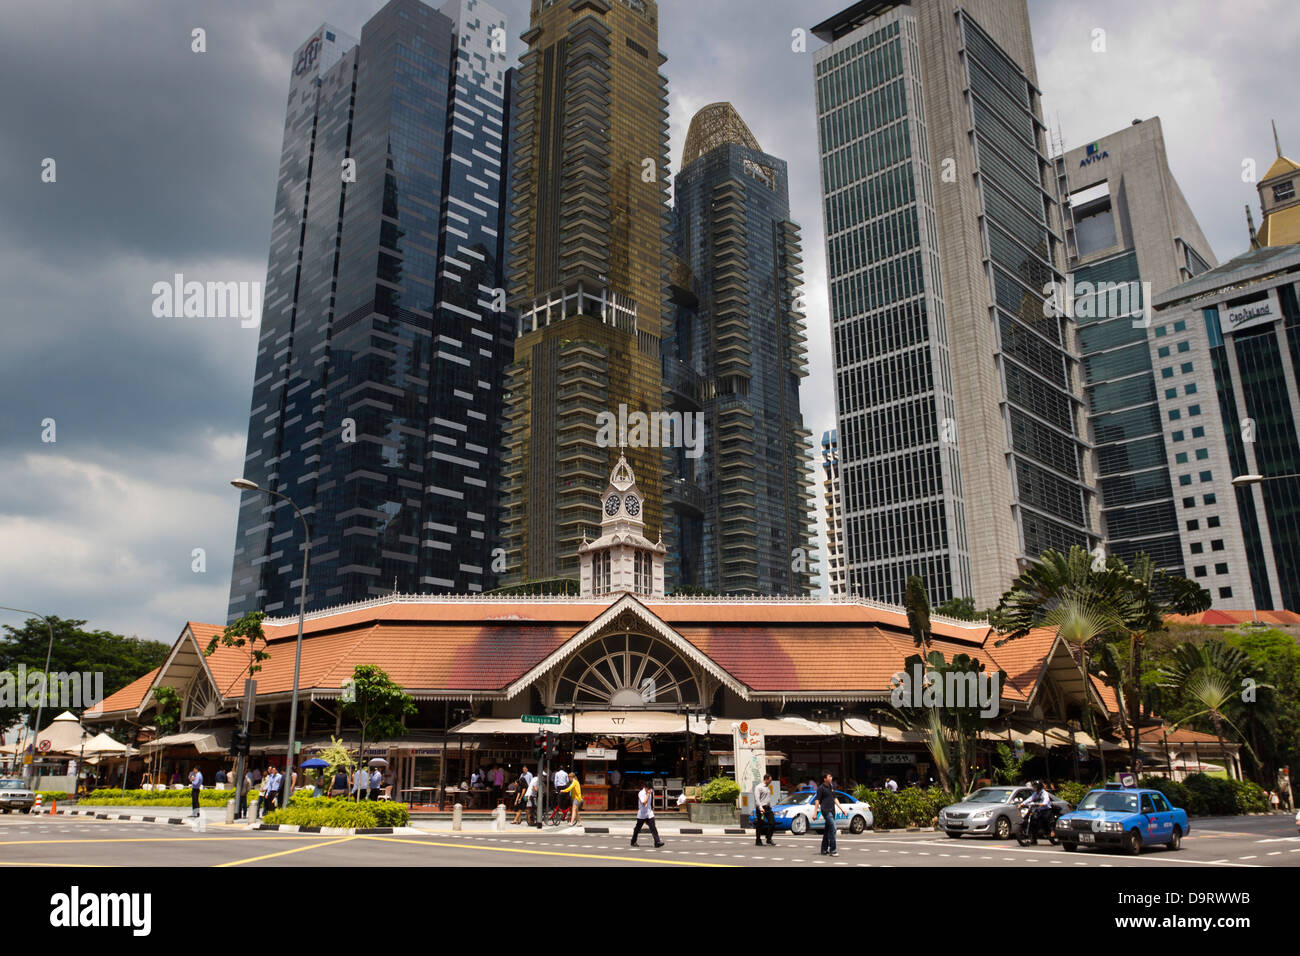 Lau Pa Sat Festival Pavilion, food court, Singapore Stock Photo